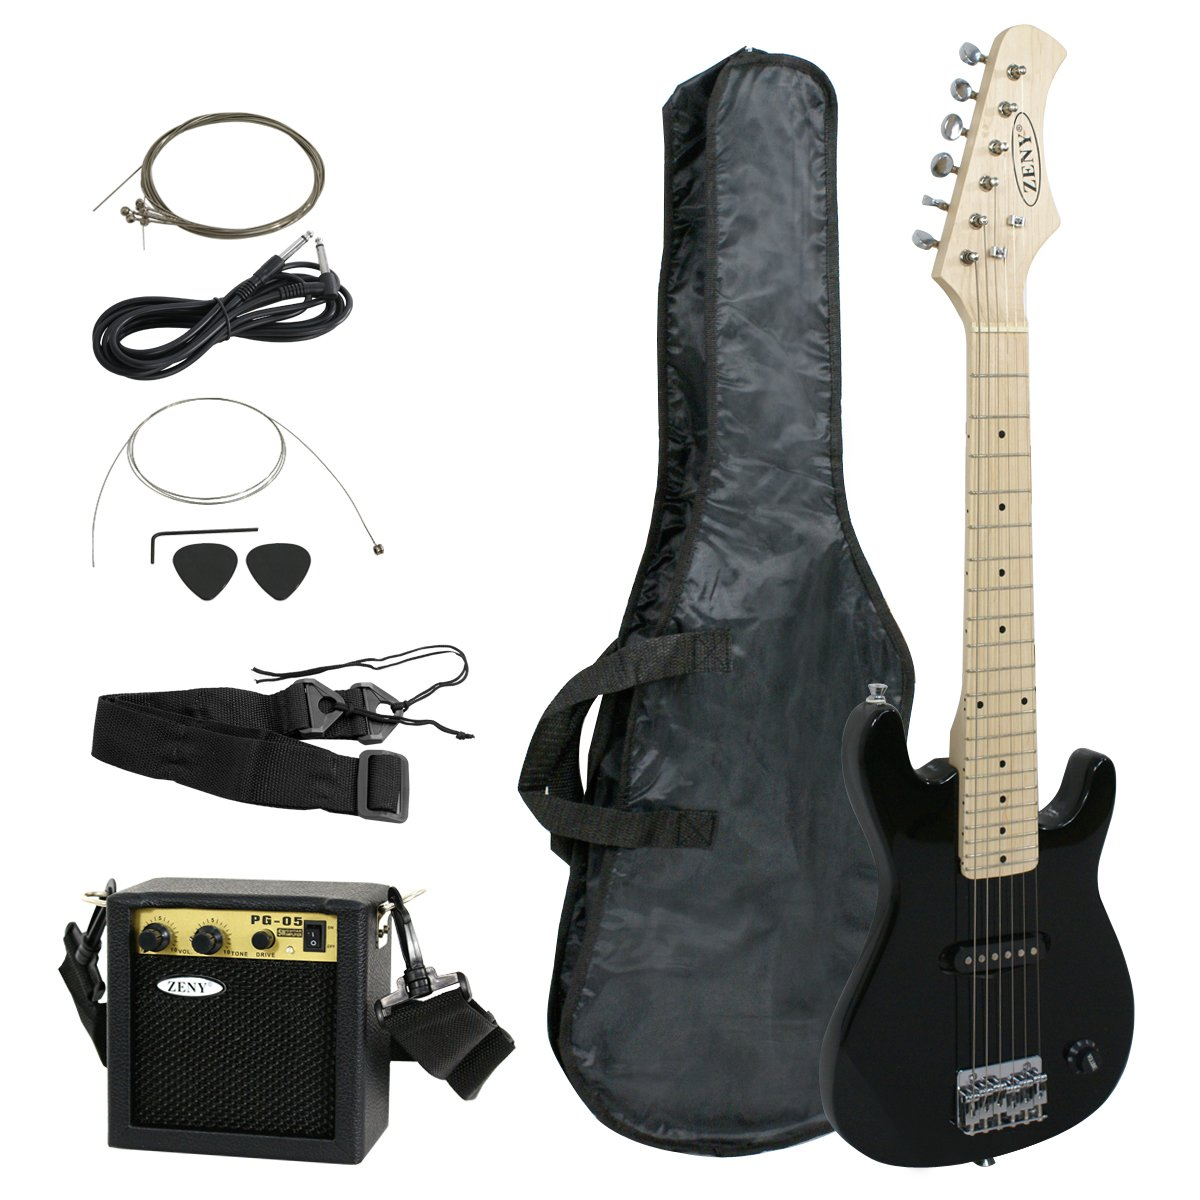 Gen x labs sports amp fitness performance kit 11 week program 4 - Amazon Com Zeny 30 Kids Electric Guitar With Amp Much More Guitar Combo Accessory Kit Black Musical Instruments